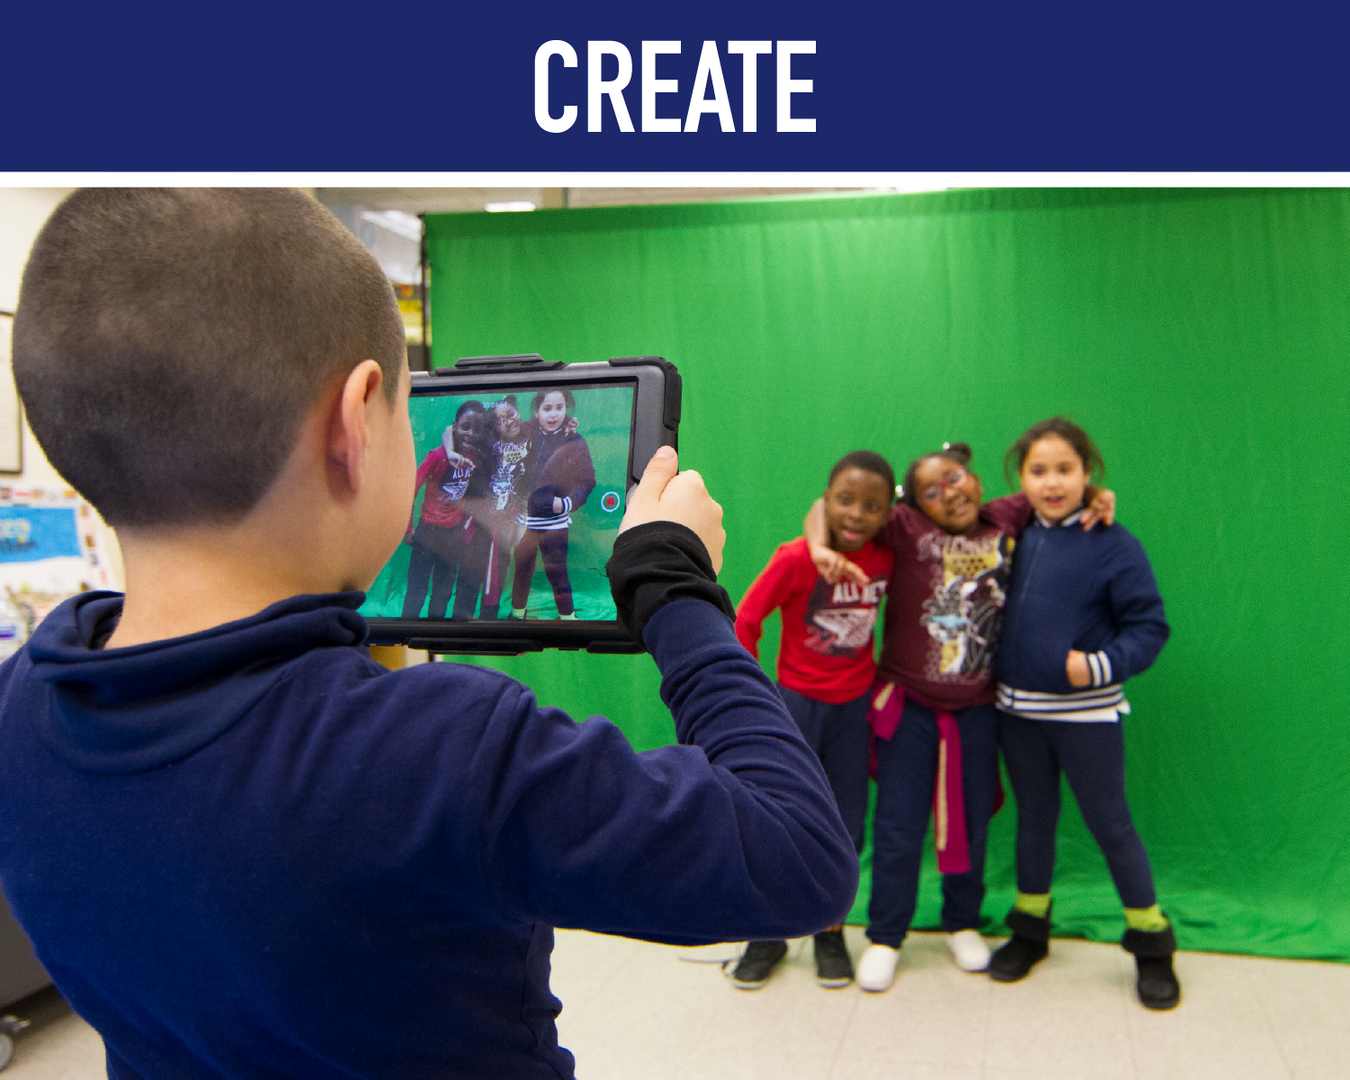 Create: student producing video on green screen